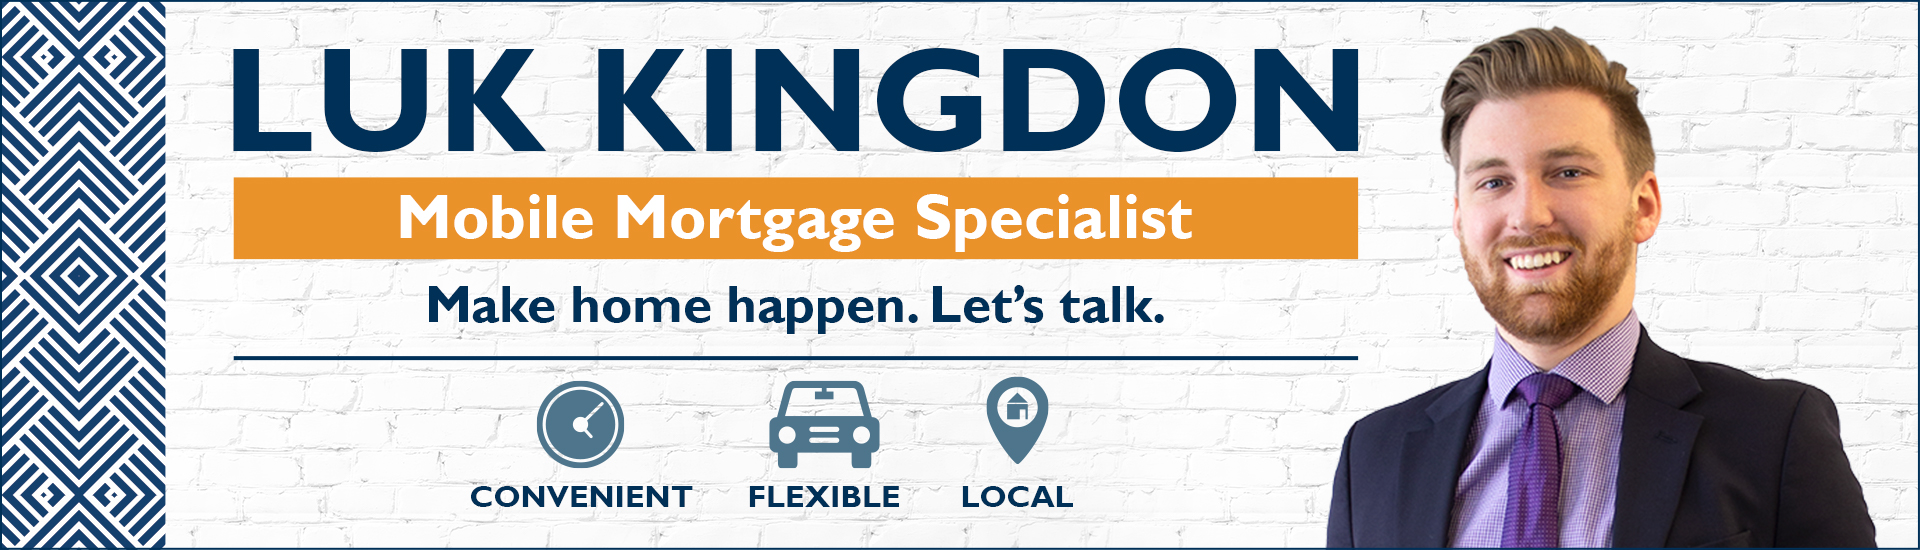 Brandon Mobile Mortgage Specialist Luk Kingdon